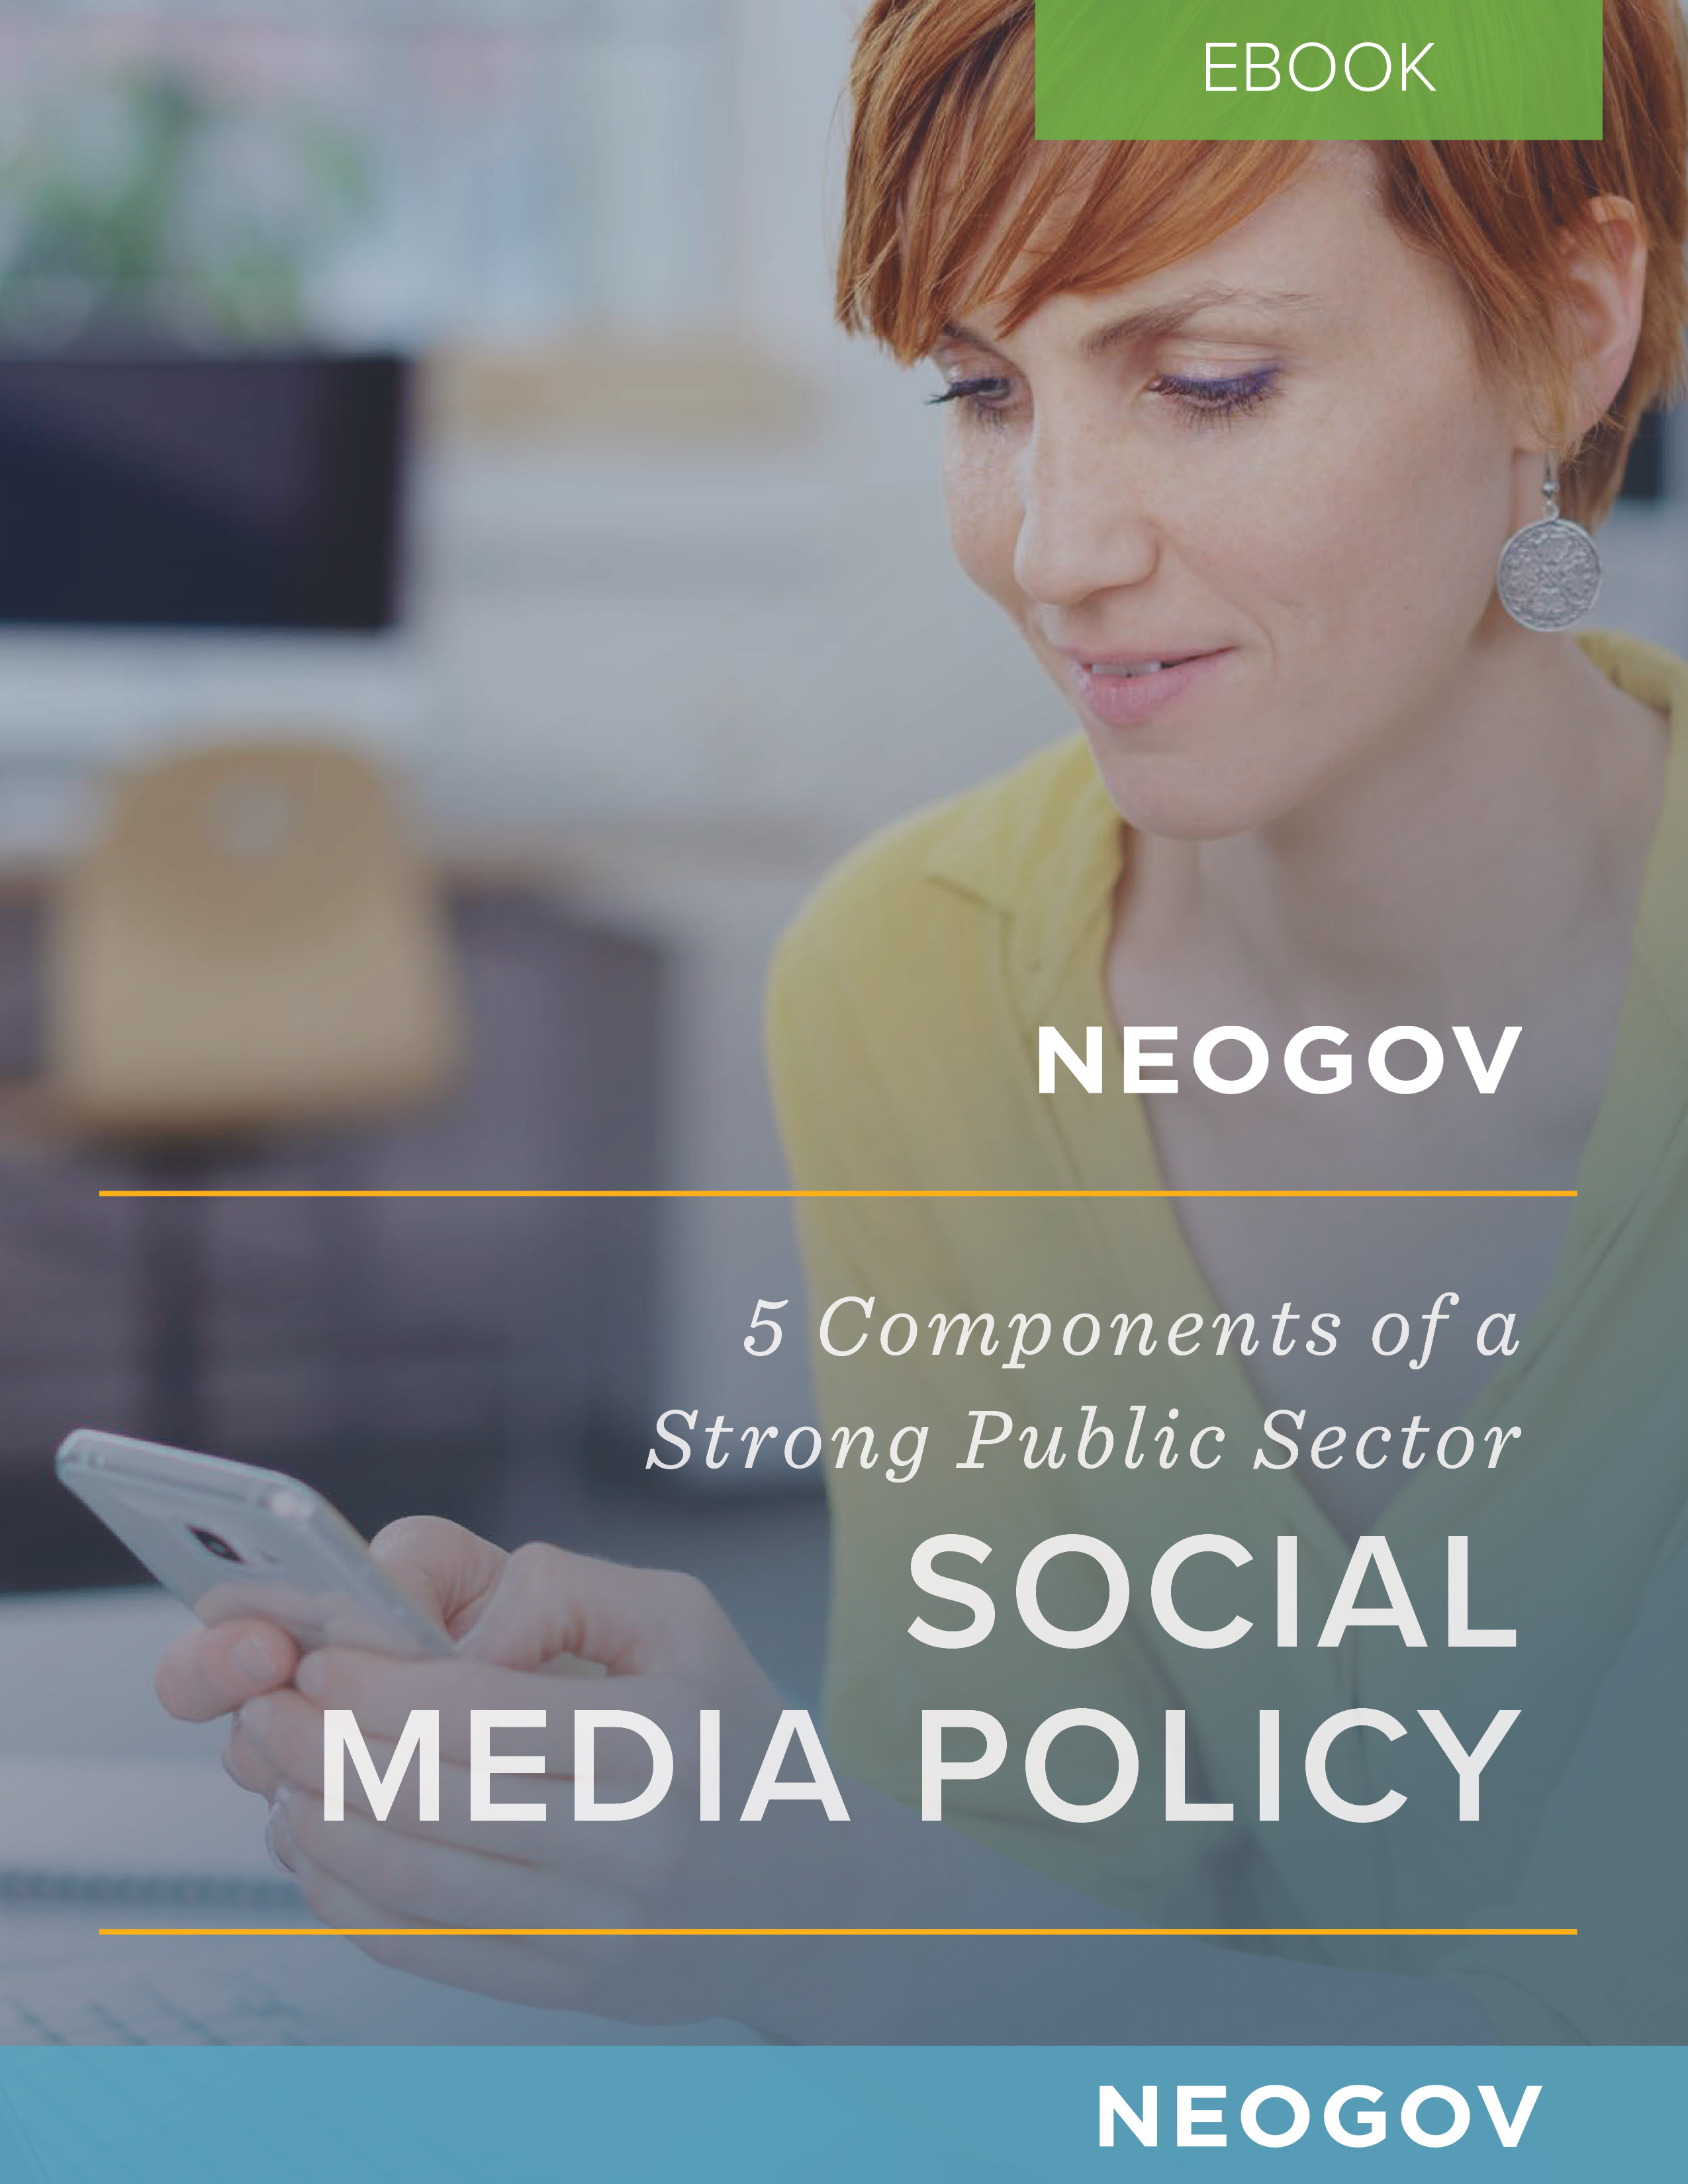 5 Components of a Strong Public Sector Social Media Policy